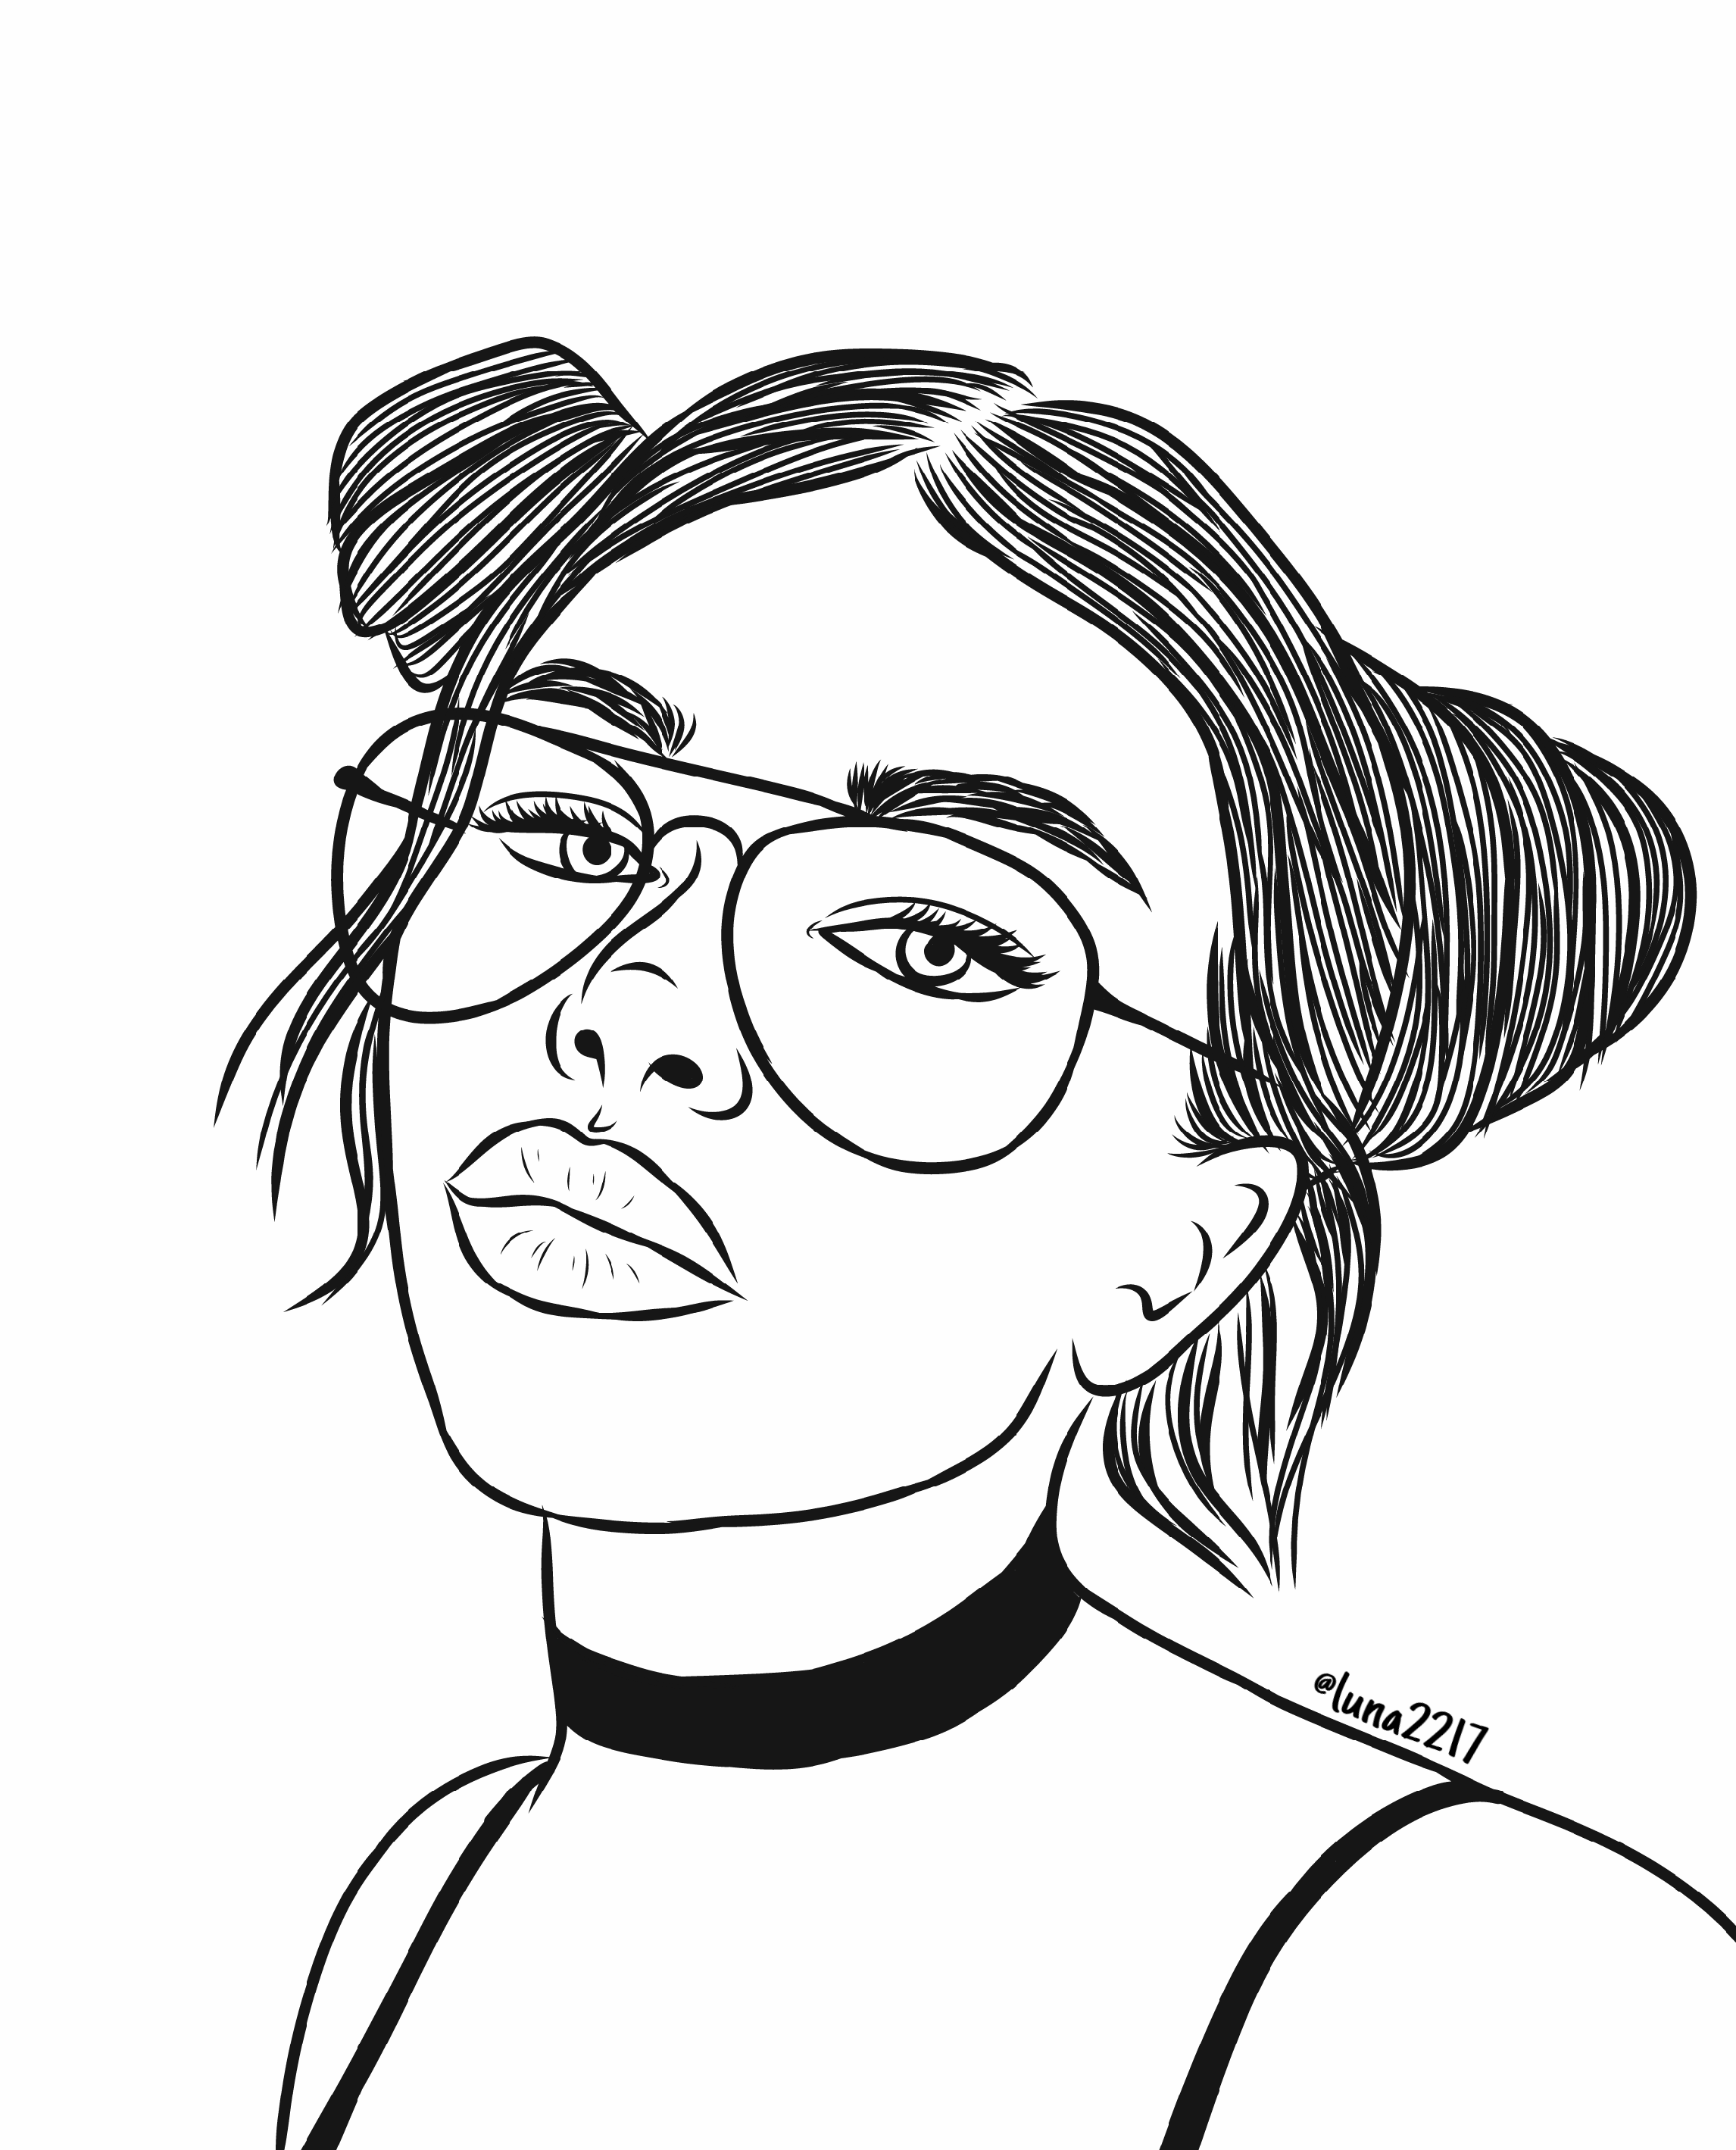 freetoedit drawing girl outlines outlinedrawing tumblr